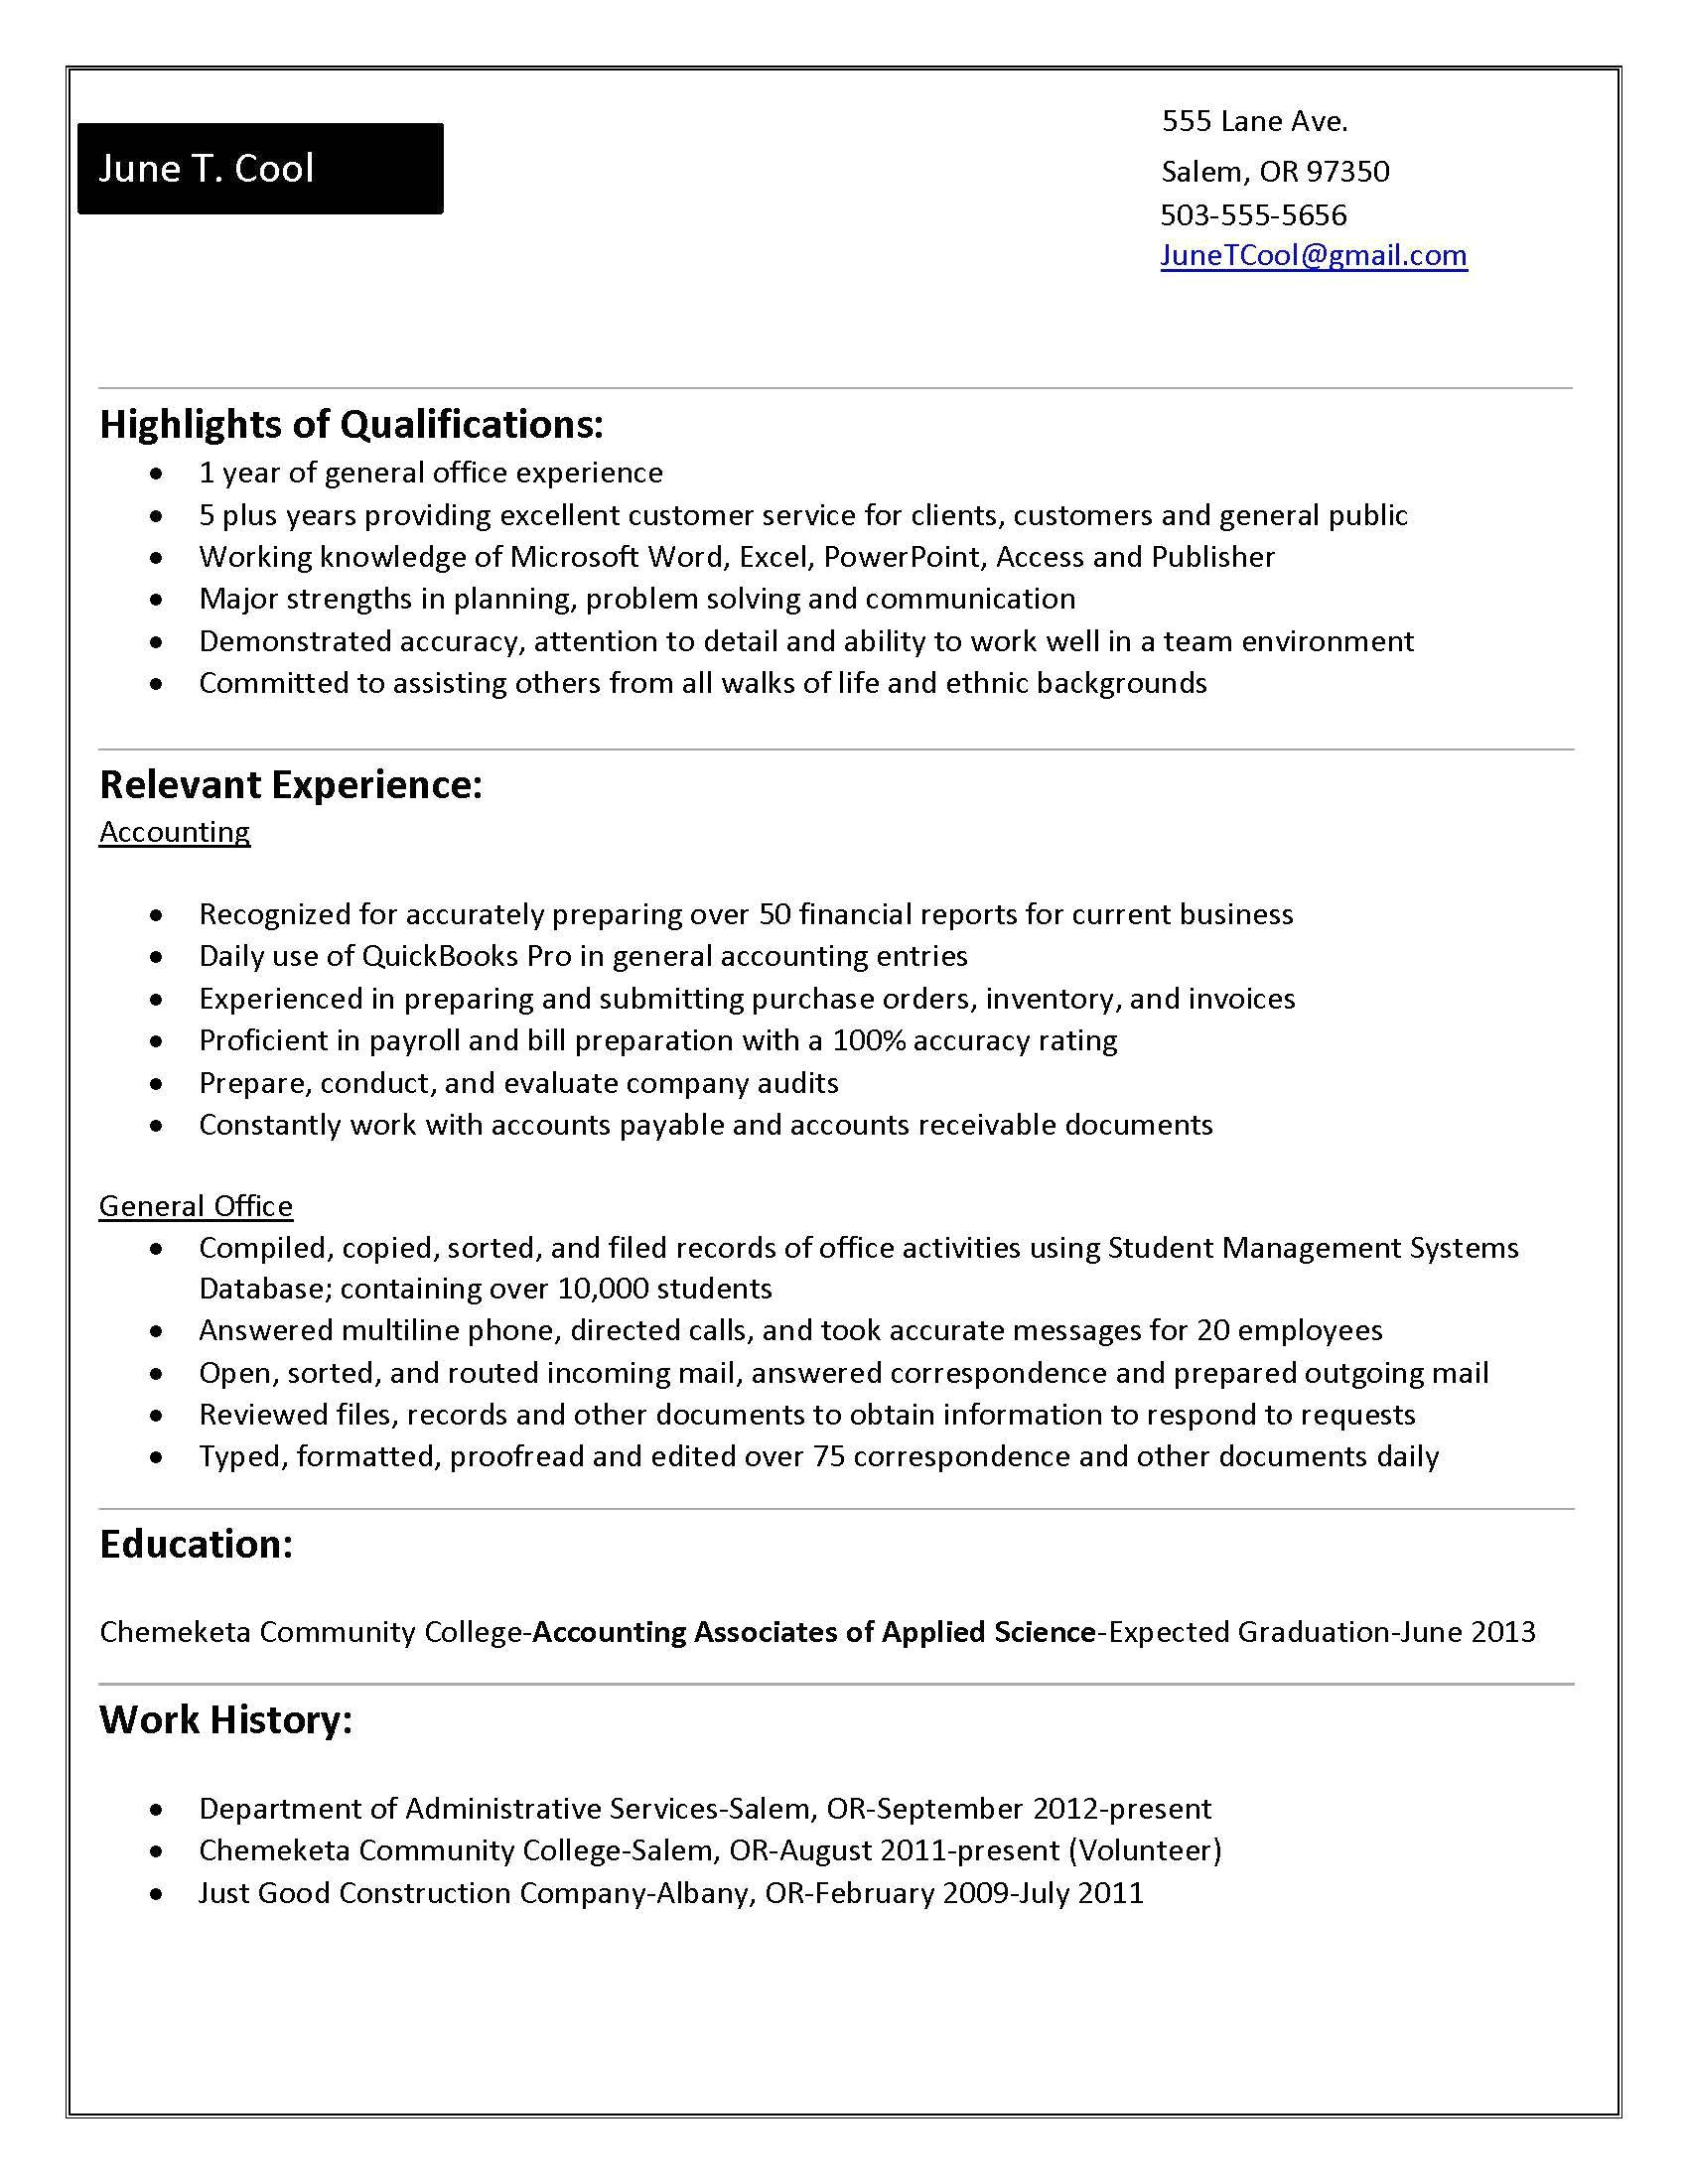 Resume Format For 5 Years Experience In Accounting Resume Format Student Resume Template Functional Resume Internship Resume